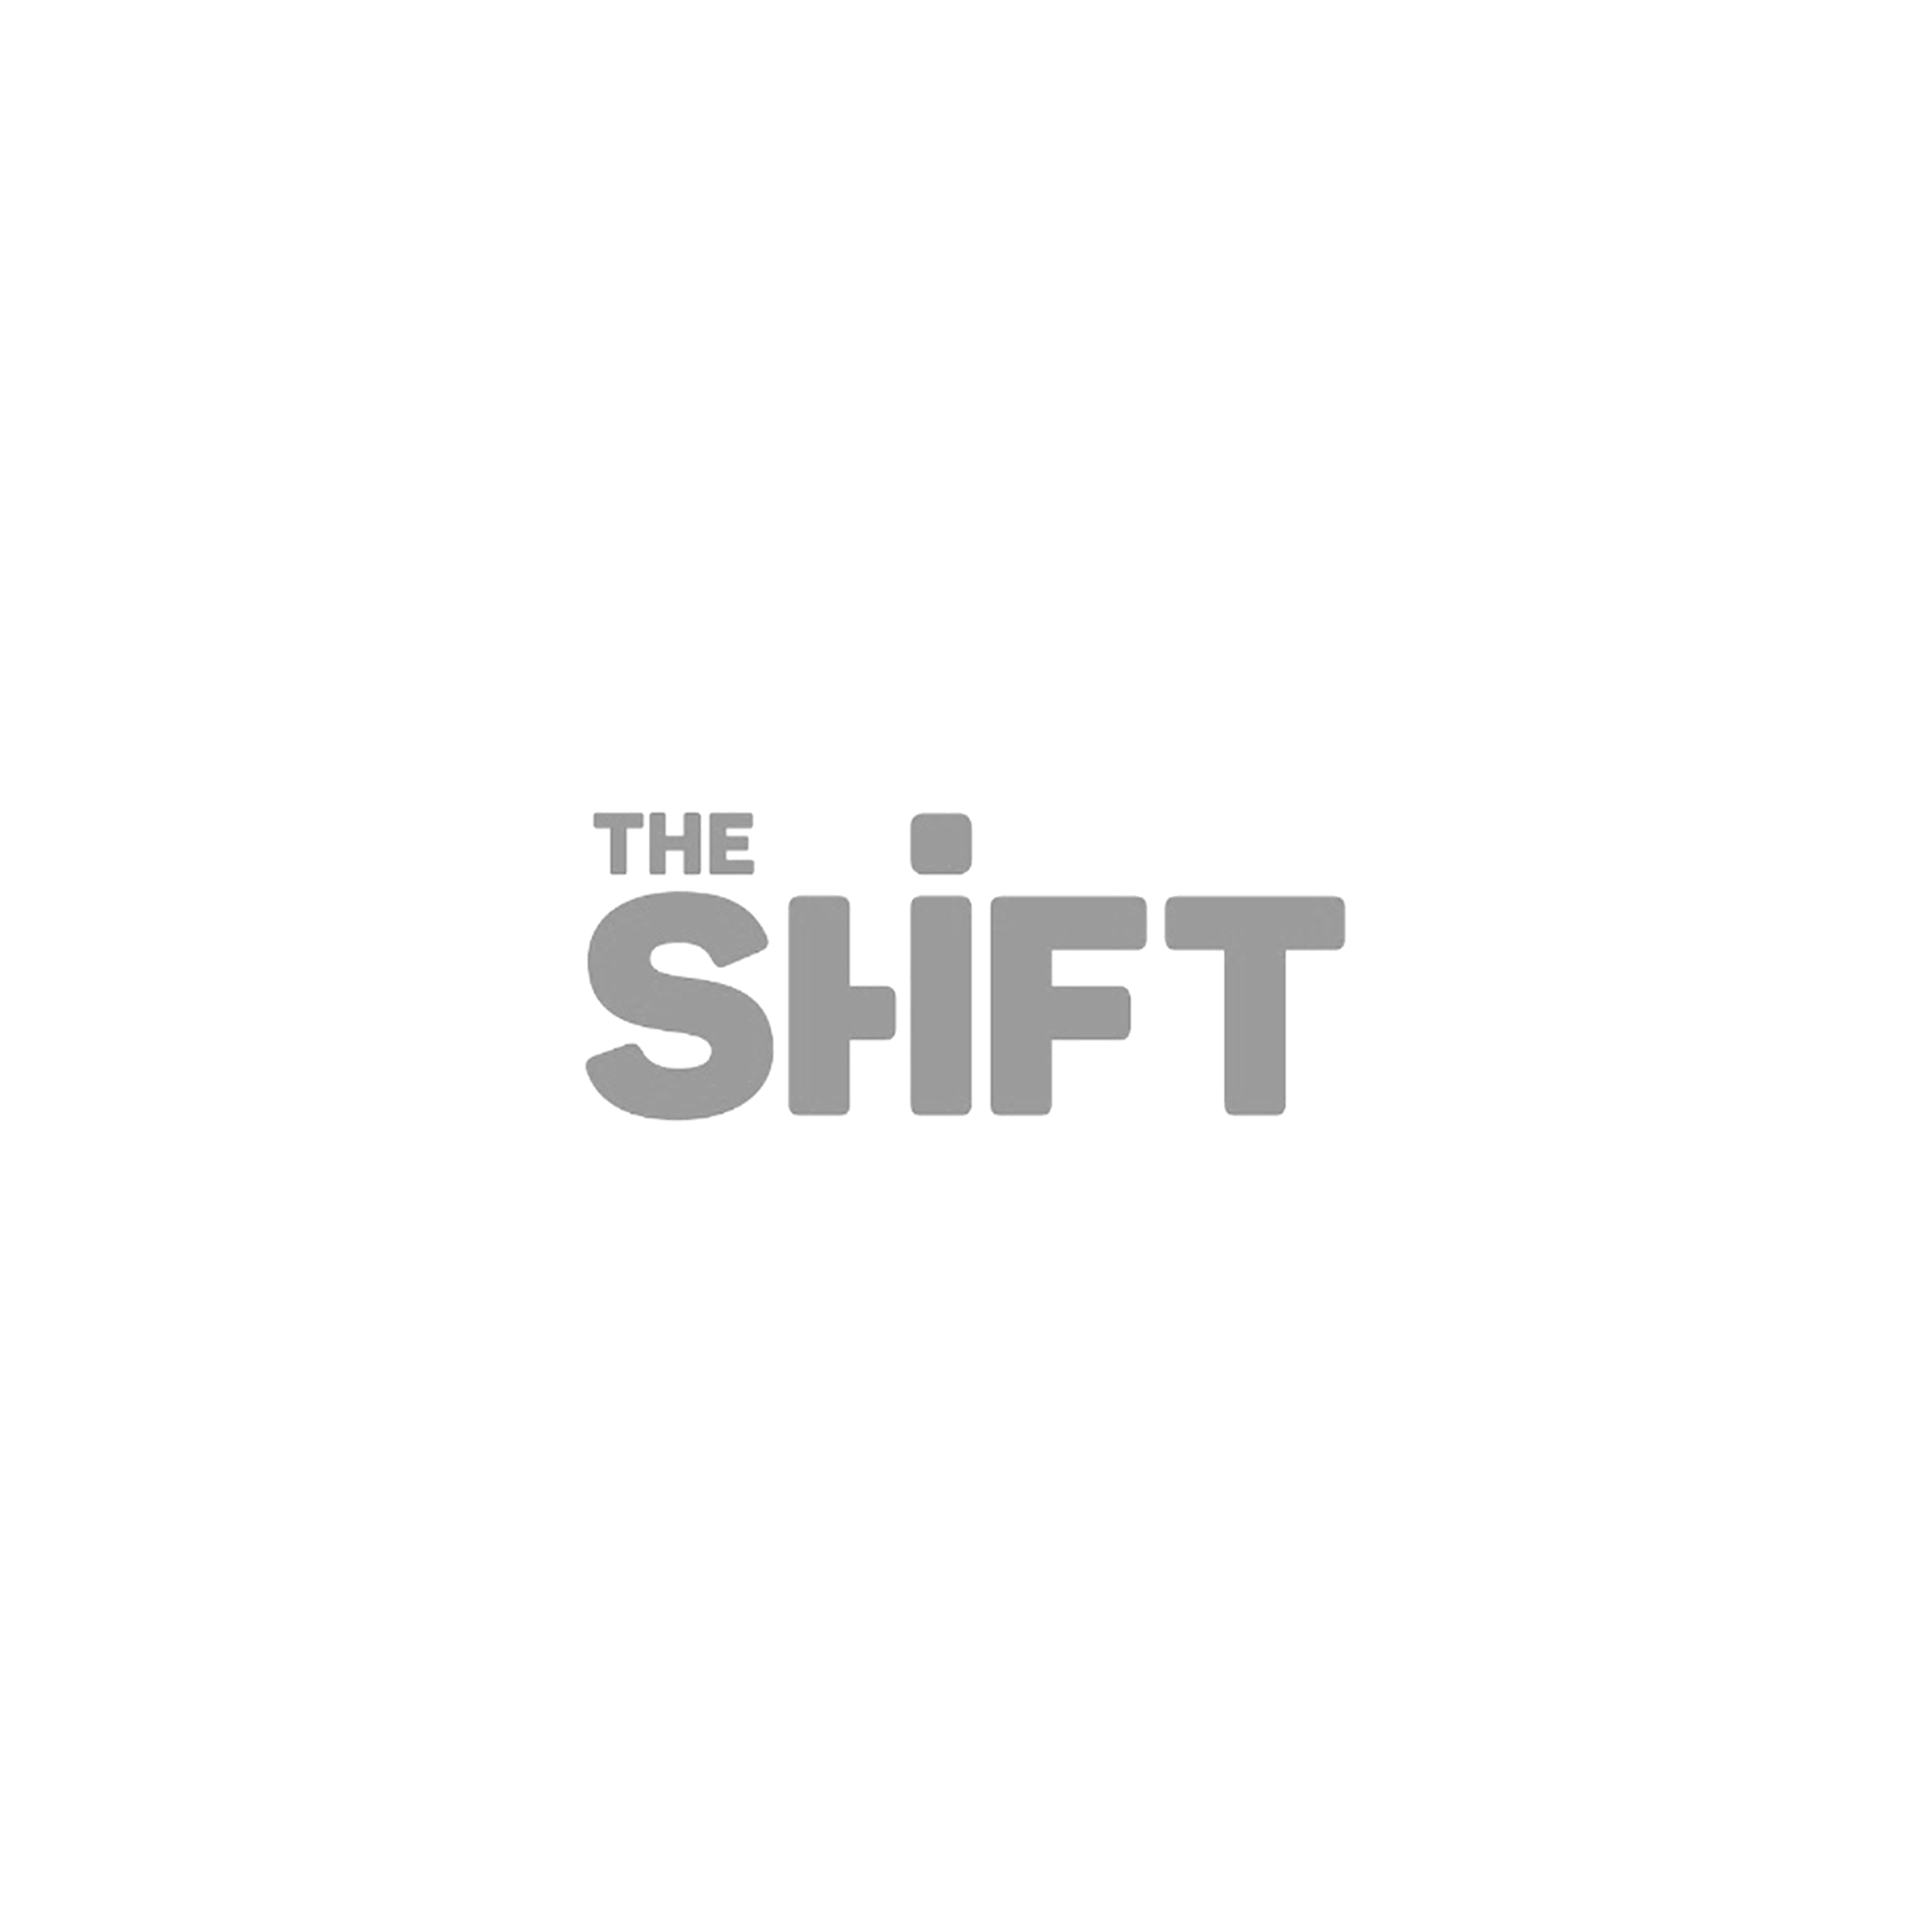 Partners-theshift-BW.png